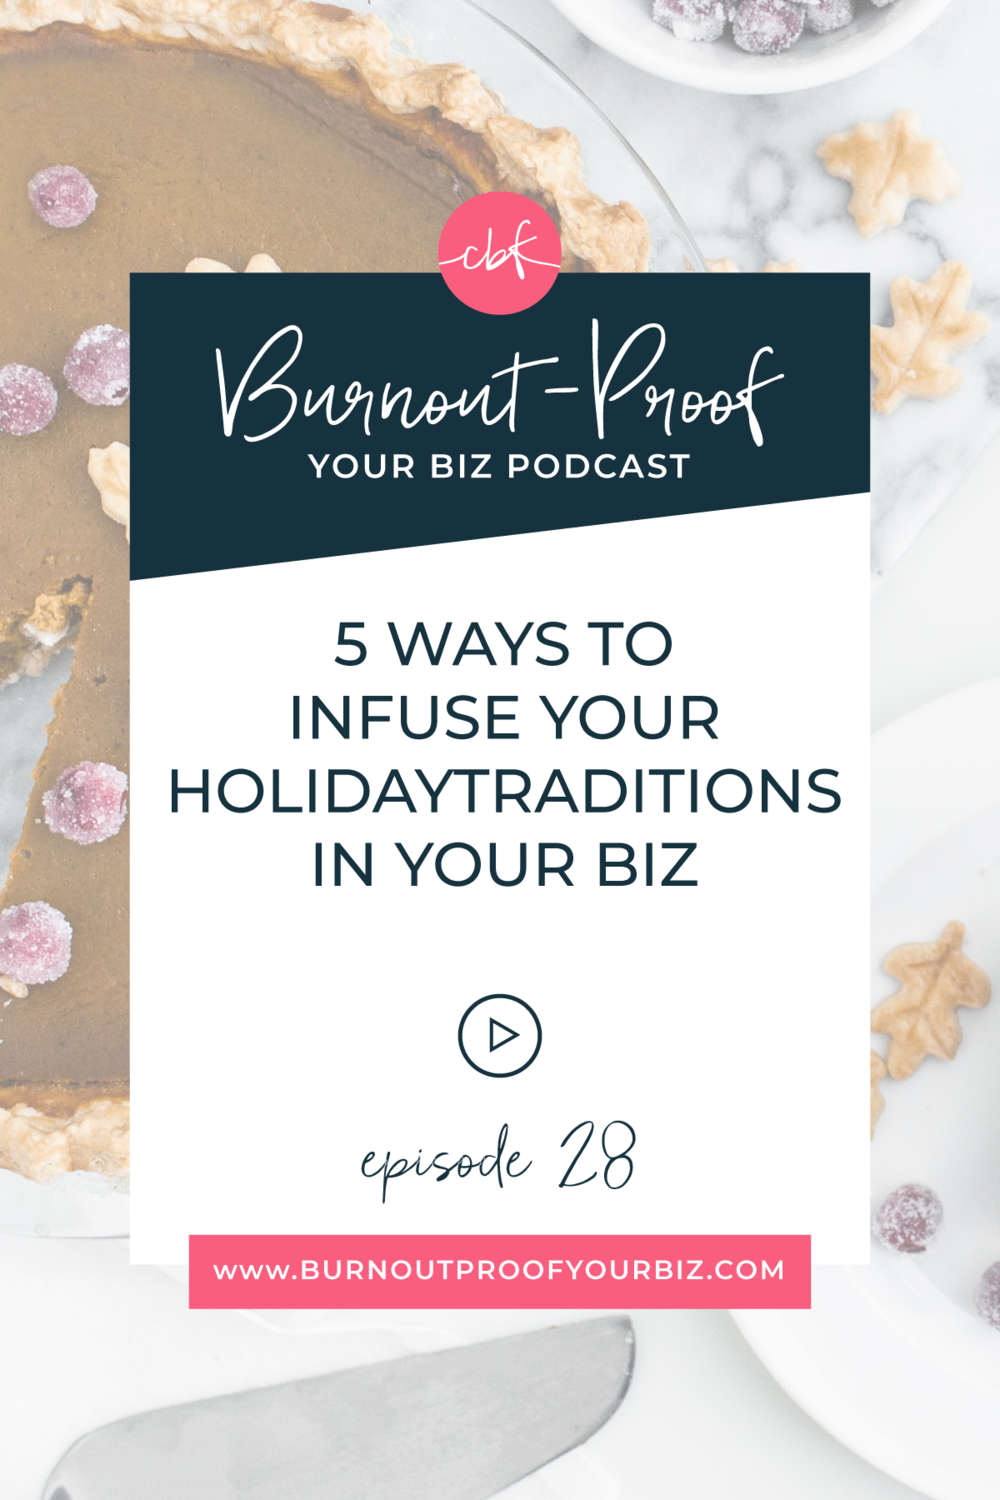 Burnout-Proof Your Biz Podcast with Chelsea B Foster | Episode 028 - 5 Ways to Infuse Your Holiday Traditions In Your Biz | Learn how to run your biz and live your dream life on your own terms without the fear of burnout.